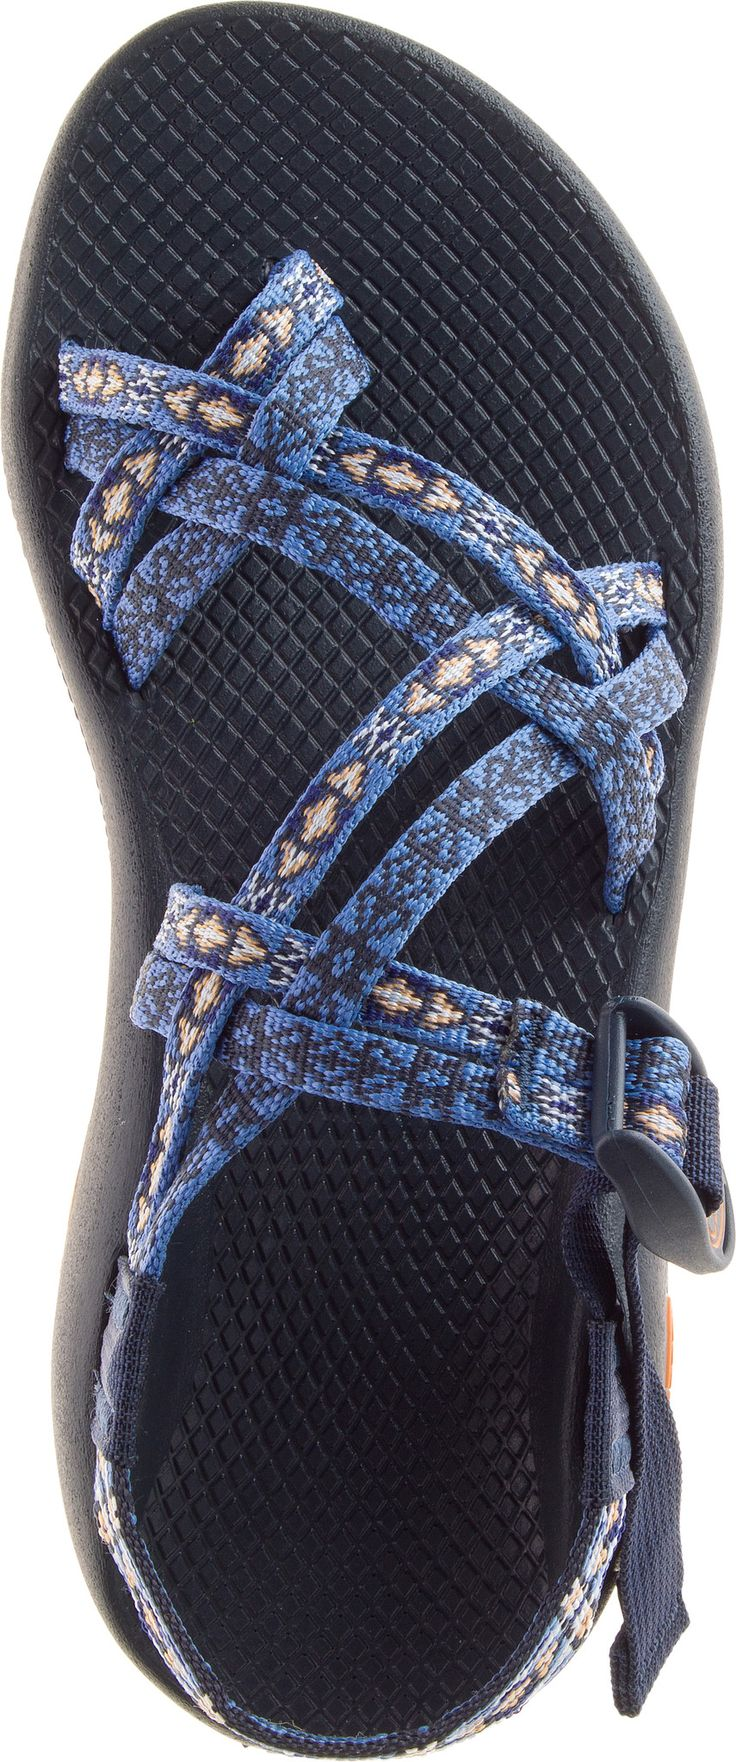 ZX2 Classic- Blue Loom. I really want a pair of Chacos!!